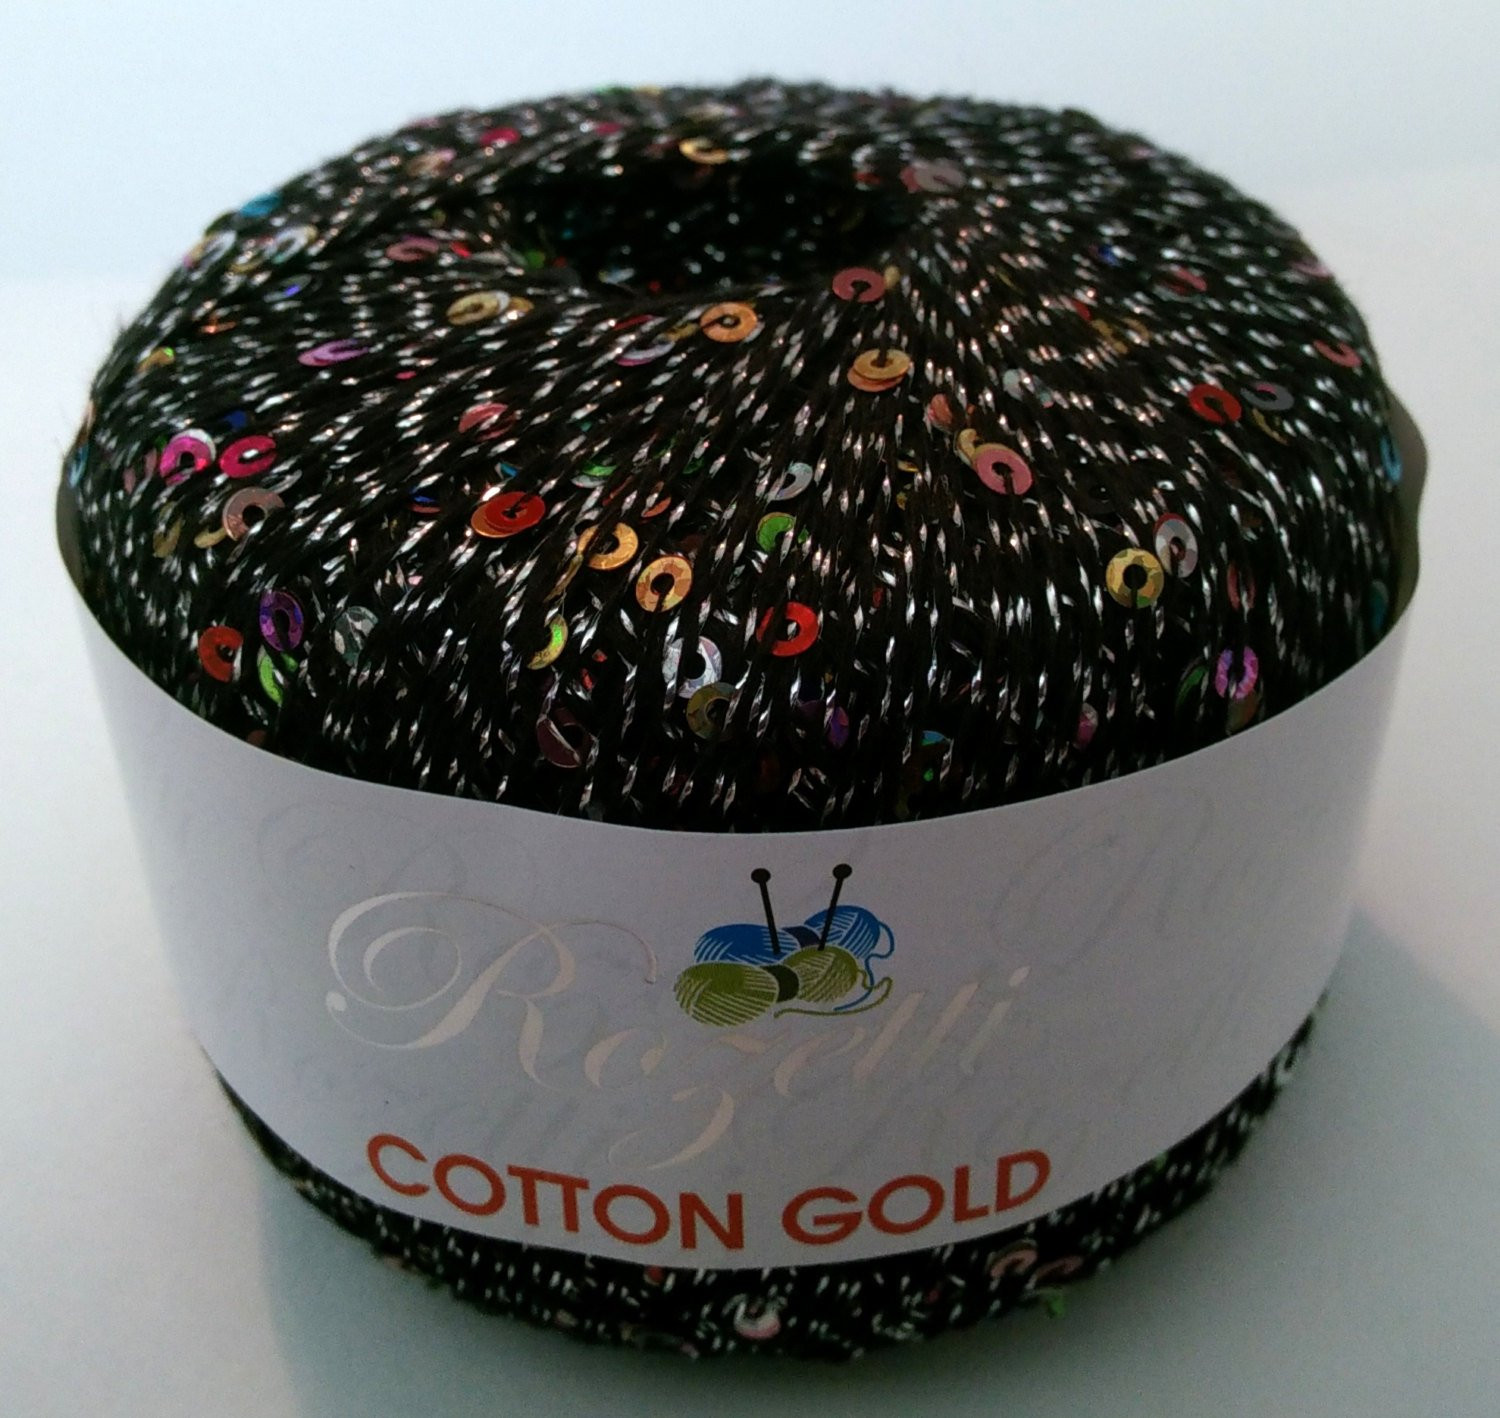 Best Of Sequin Yarn Cotton Yarn Rozetti Yarn Cotton Gold Black W Black and Gold Yarn Of Superb 46 Images Black and Gold Yarn